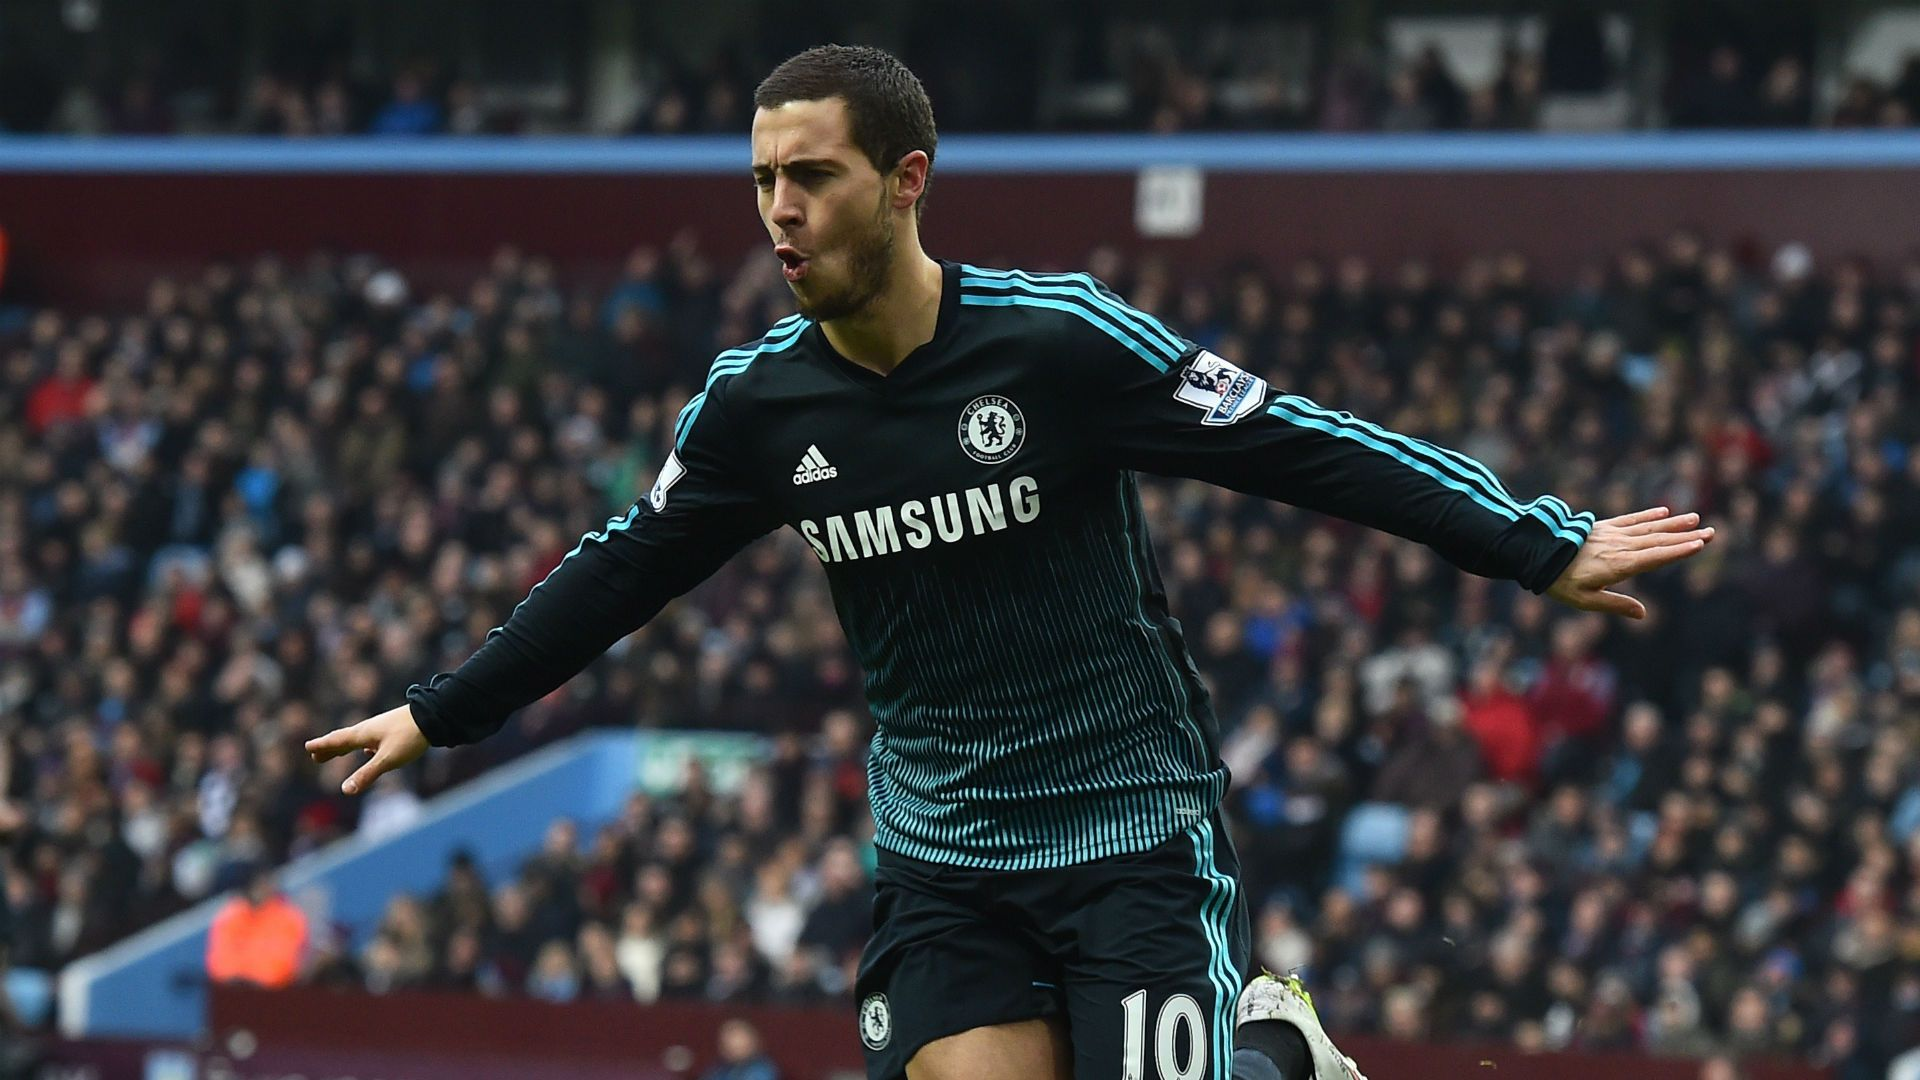 Eden hazard hd wallpapers 6 edenhazardhdwallpapers edenhazard eden hazard hd wallpapers 6 edenhazardhdwallpapers edenhazard hazard football soccer voltagebd Image collections